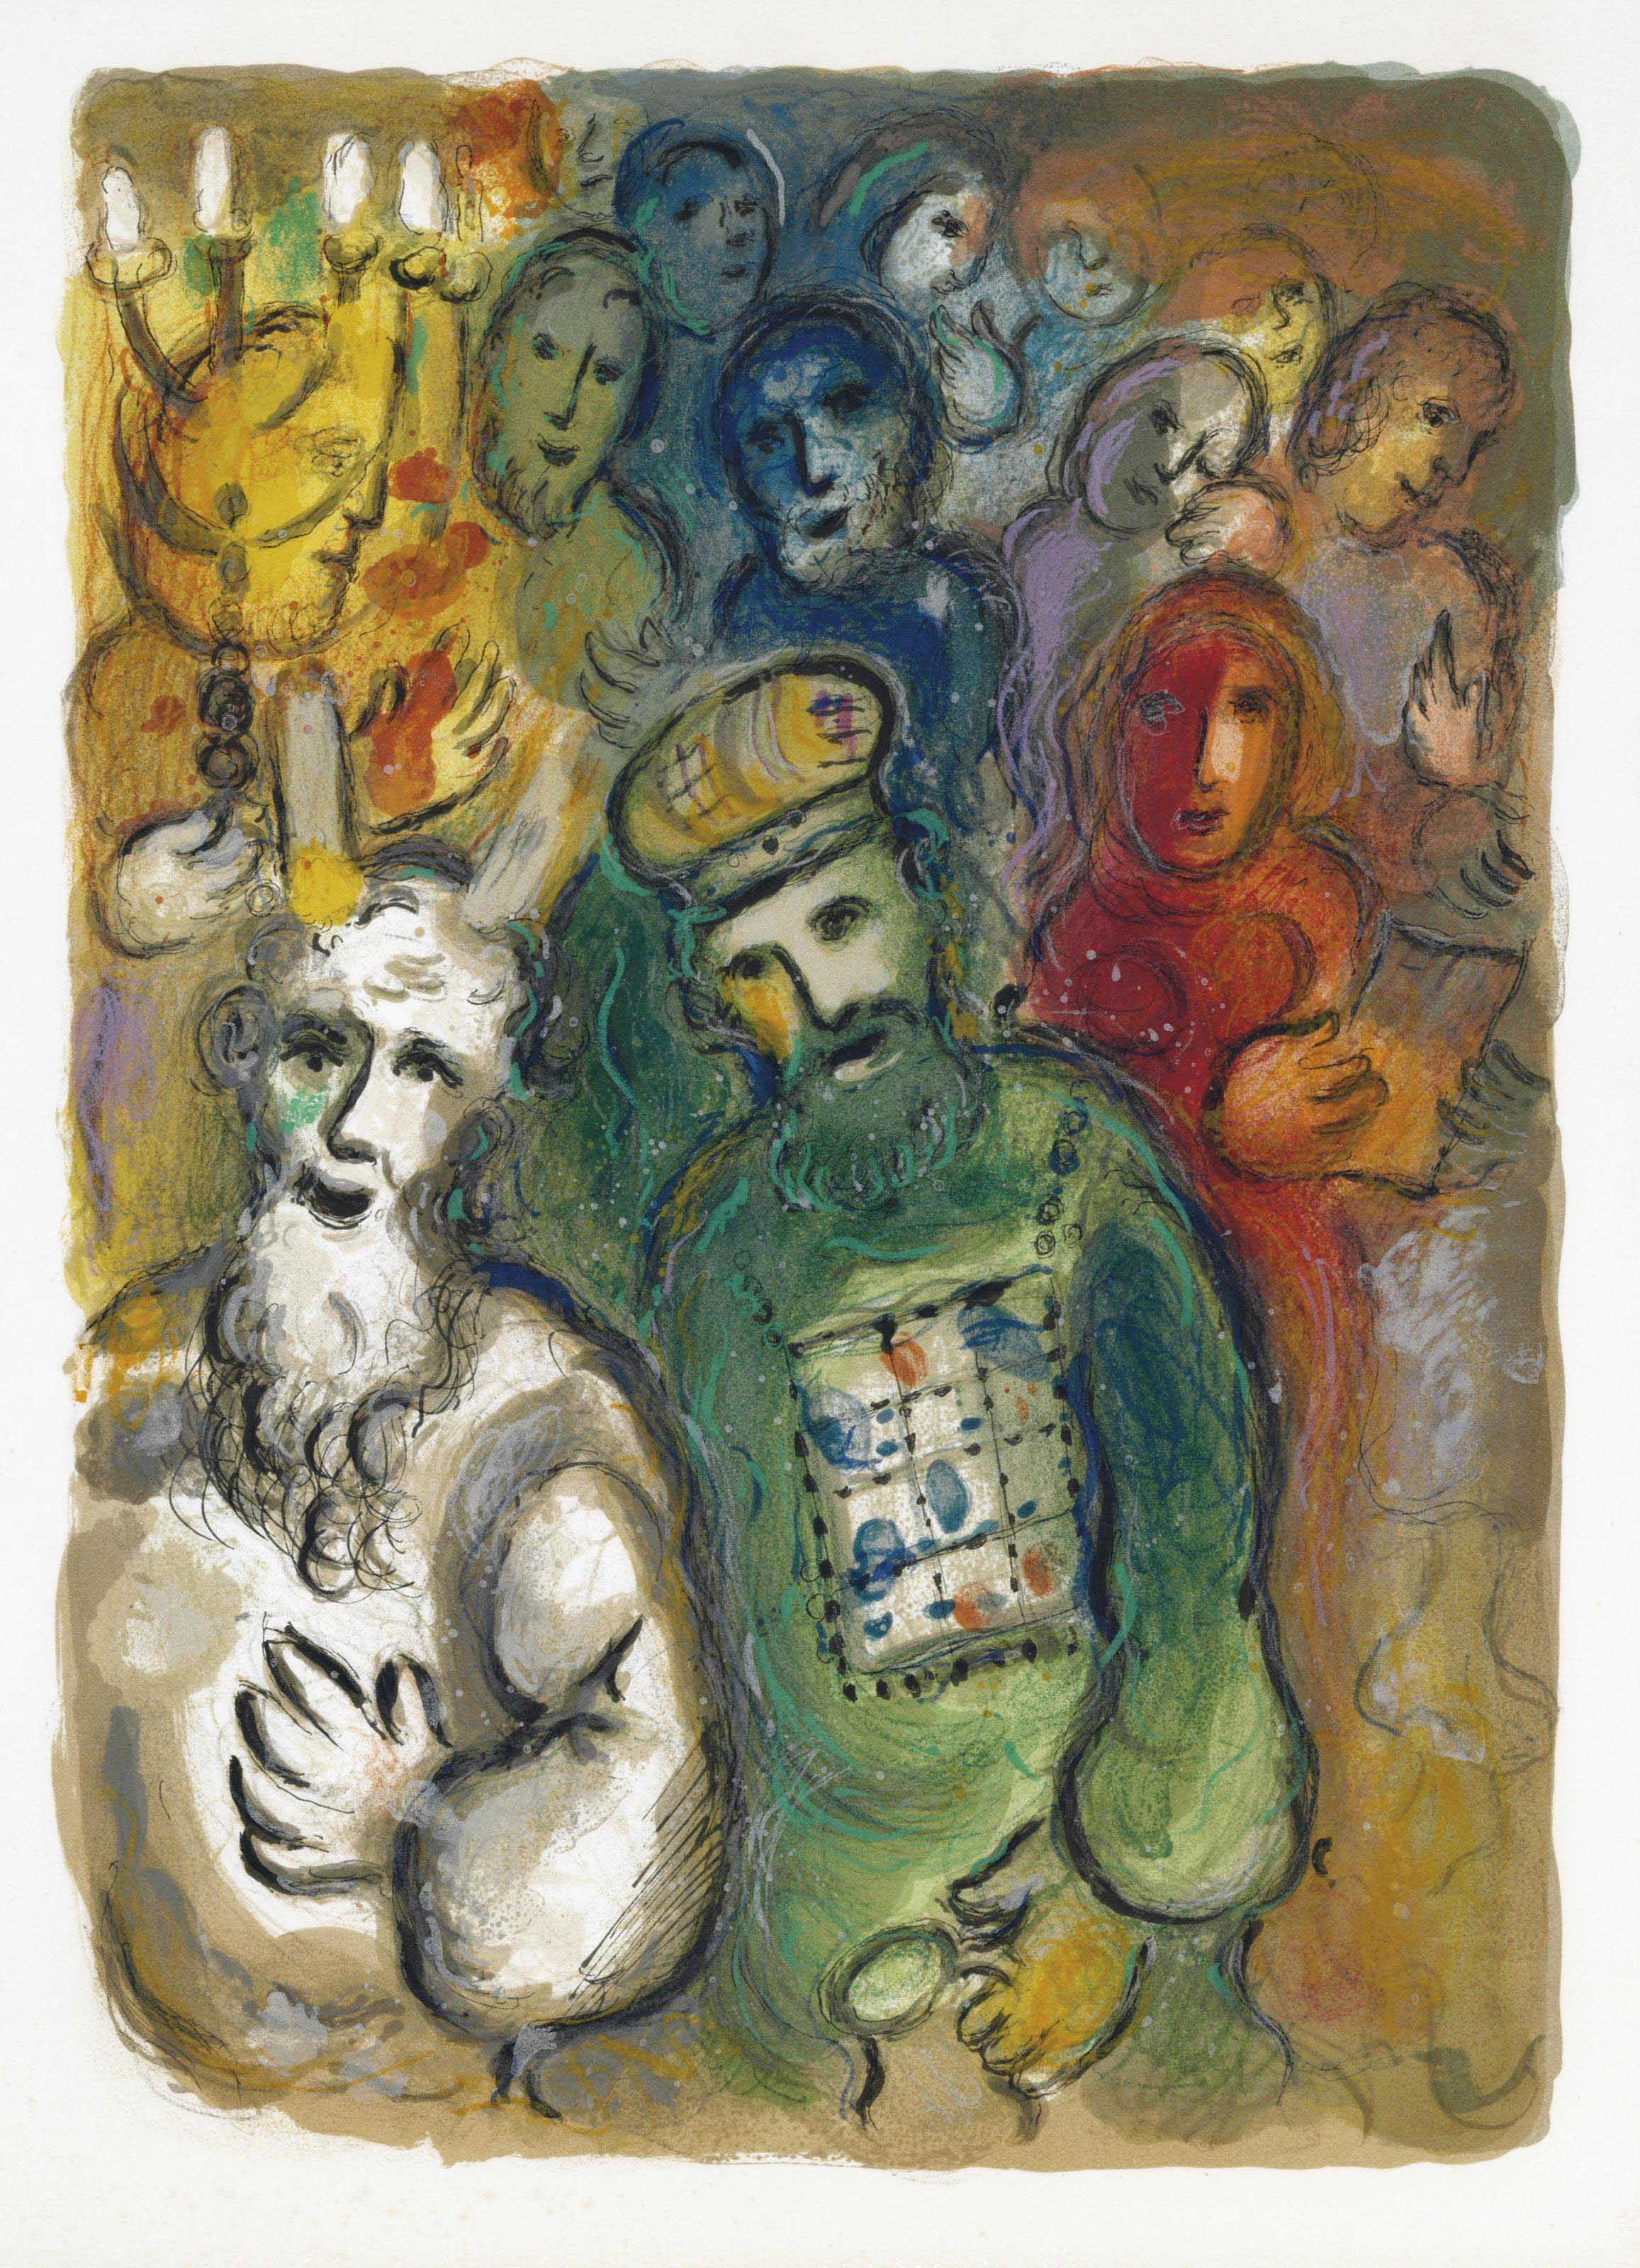 marc chagall   the story of exodus   leon amiel  paris and